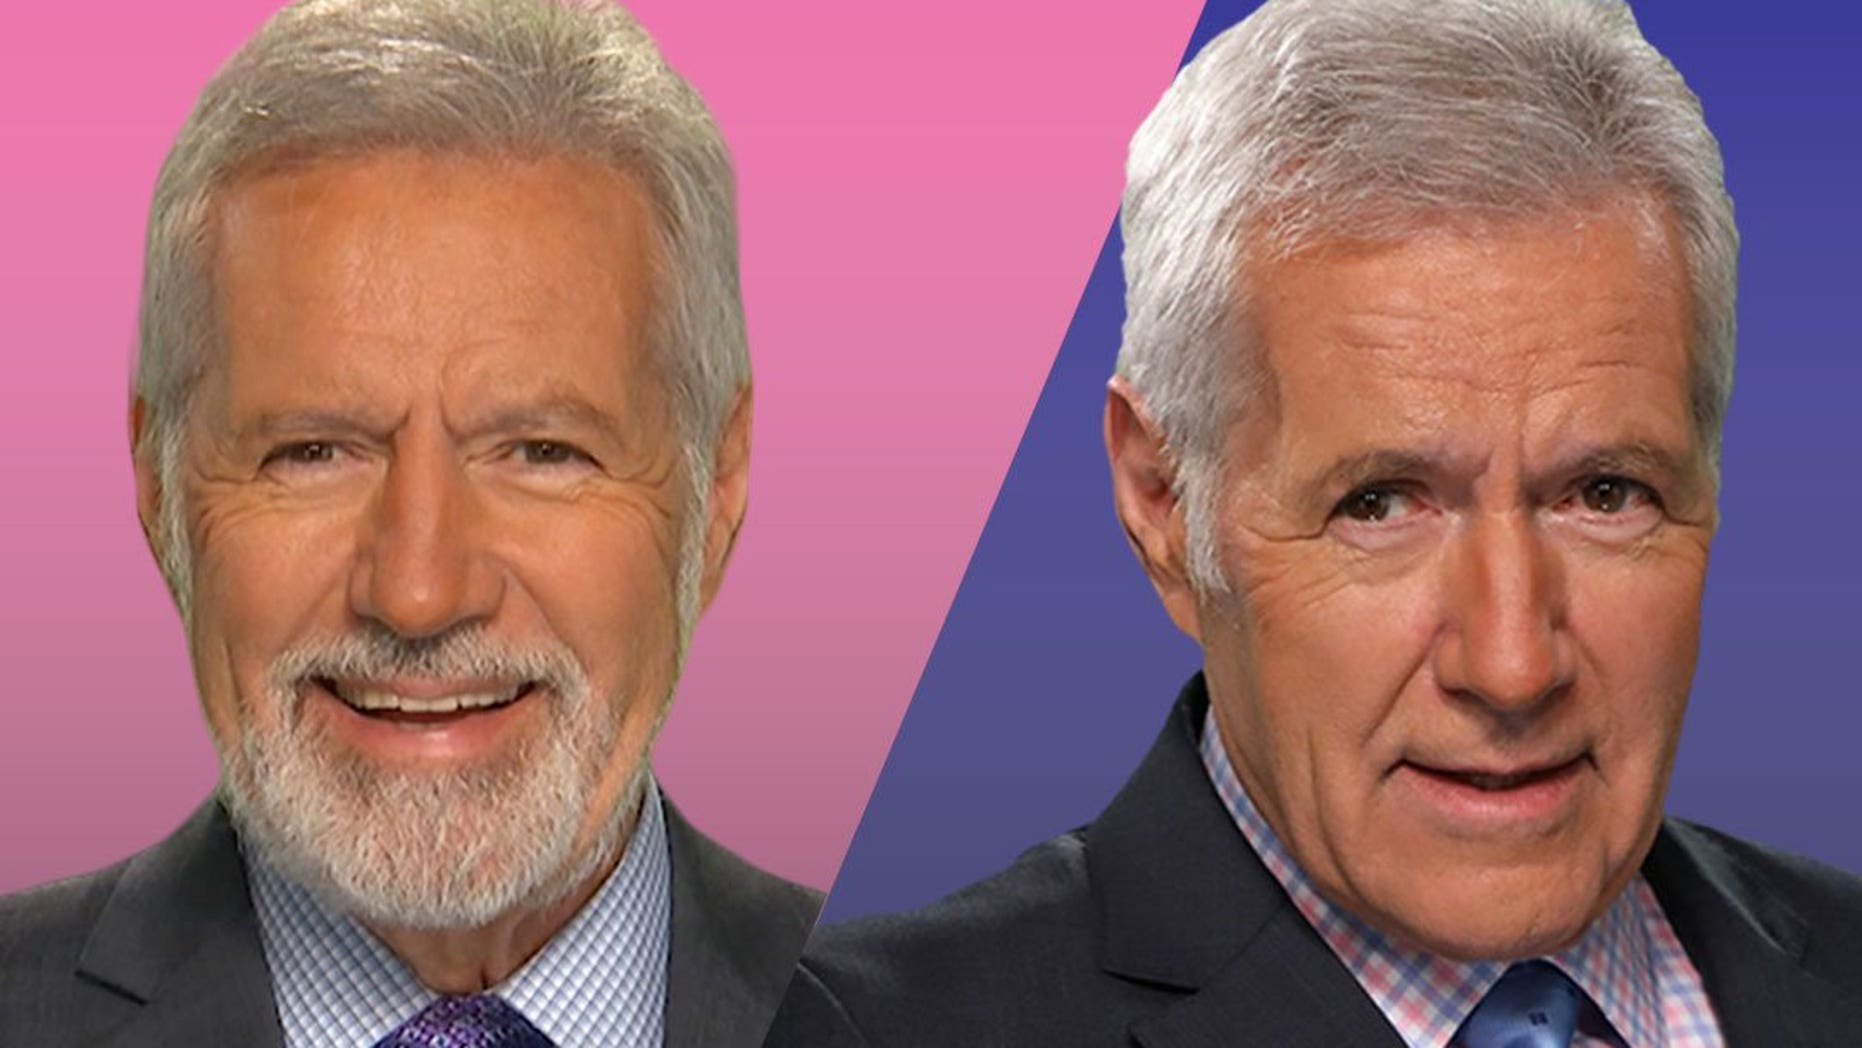 Alex Trebek stunned viewers on Monday when he hosted 'Jeopardy!' with a beard.